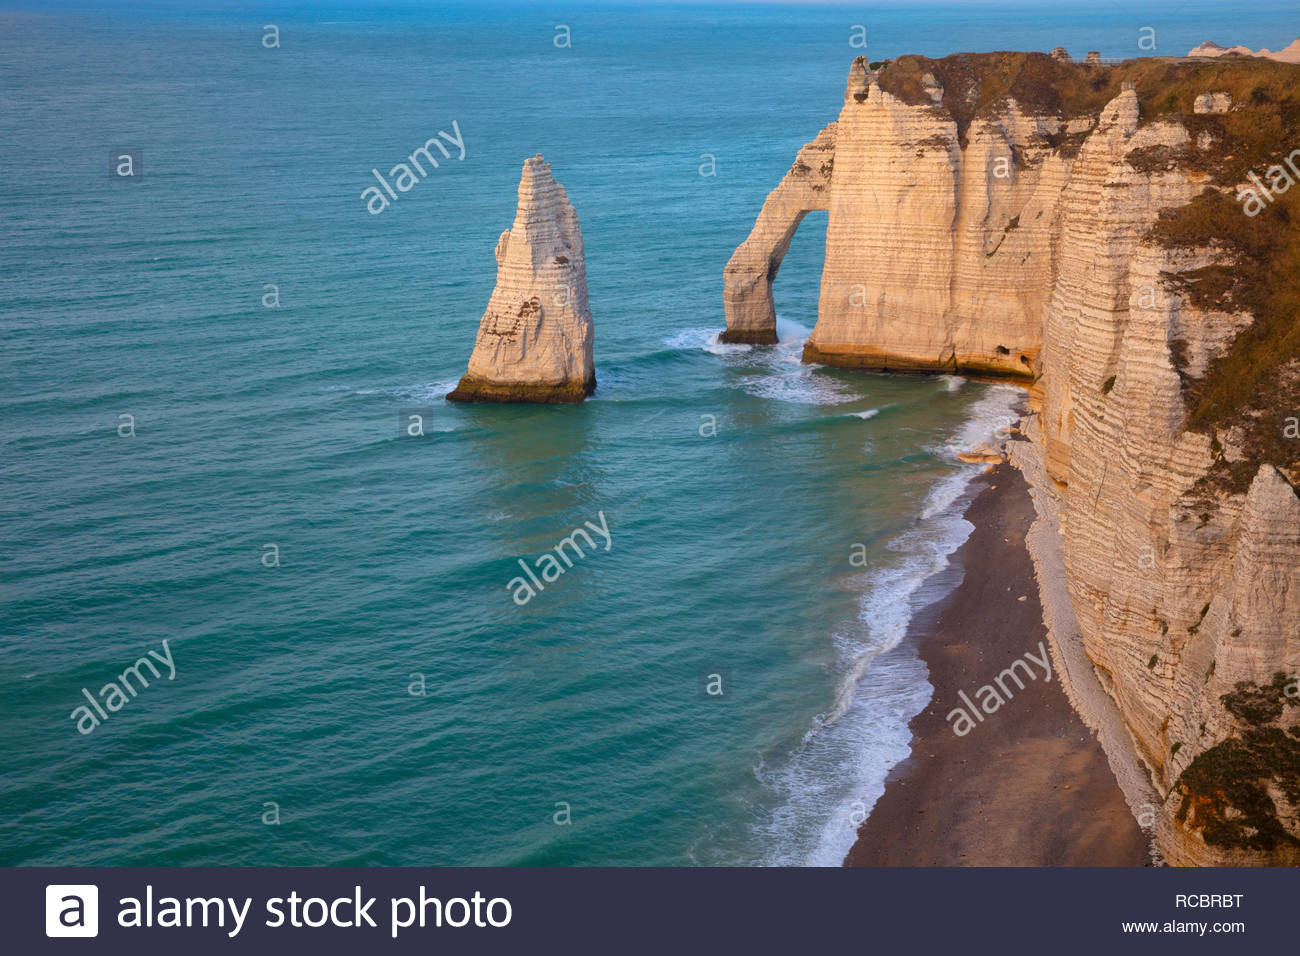 The sea arch Porte d'Aval and the sea stack L'Aiguille (the Needle) stand in the Atlantic Ocean next to the cliffs of Étretat in Normandy, France. - Stock Image